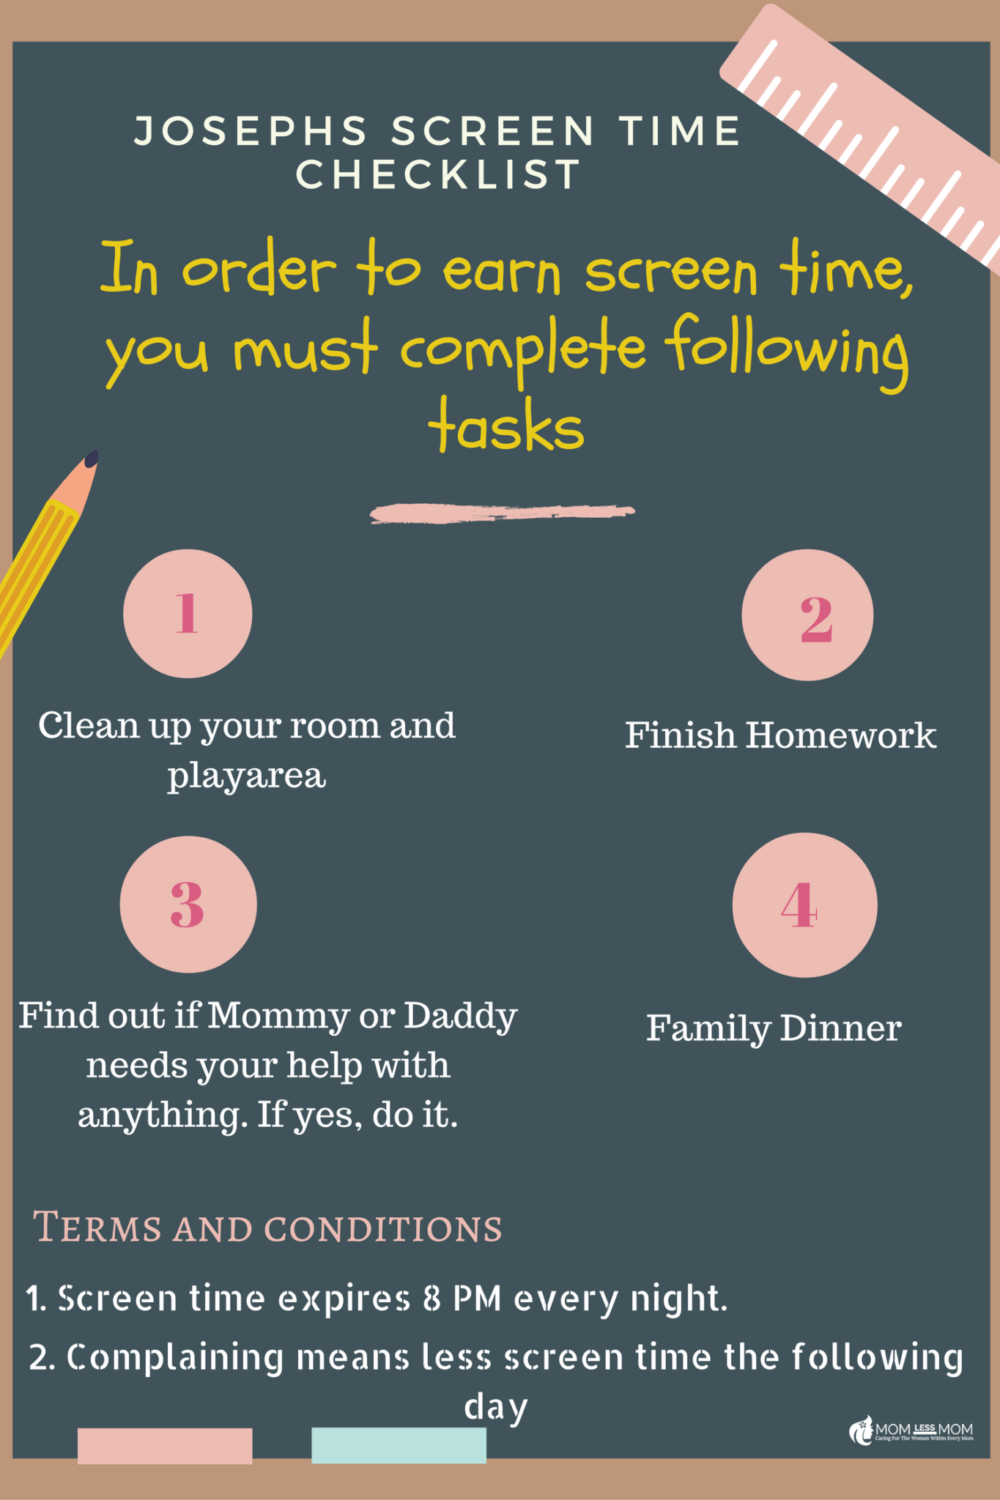 Online screen time policy for kids